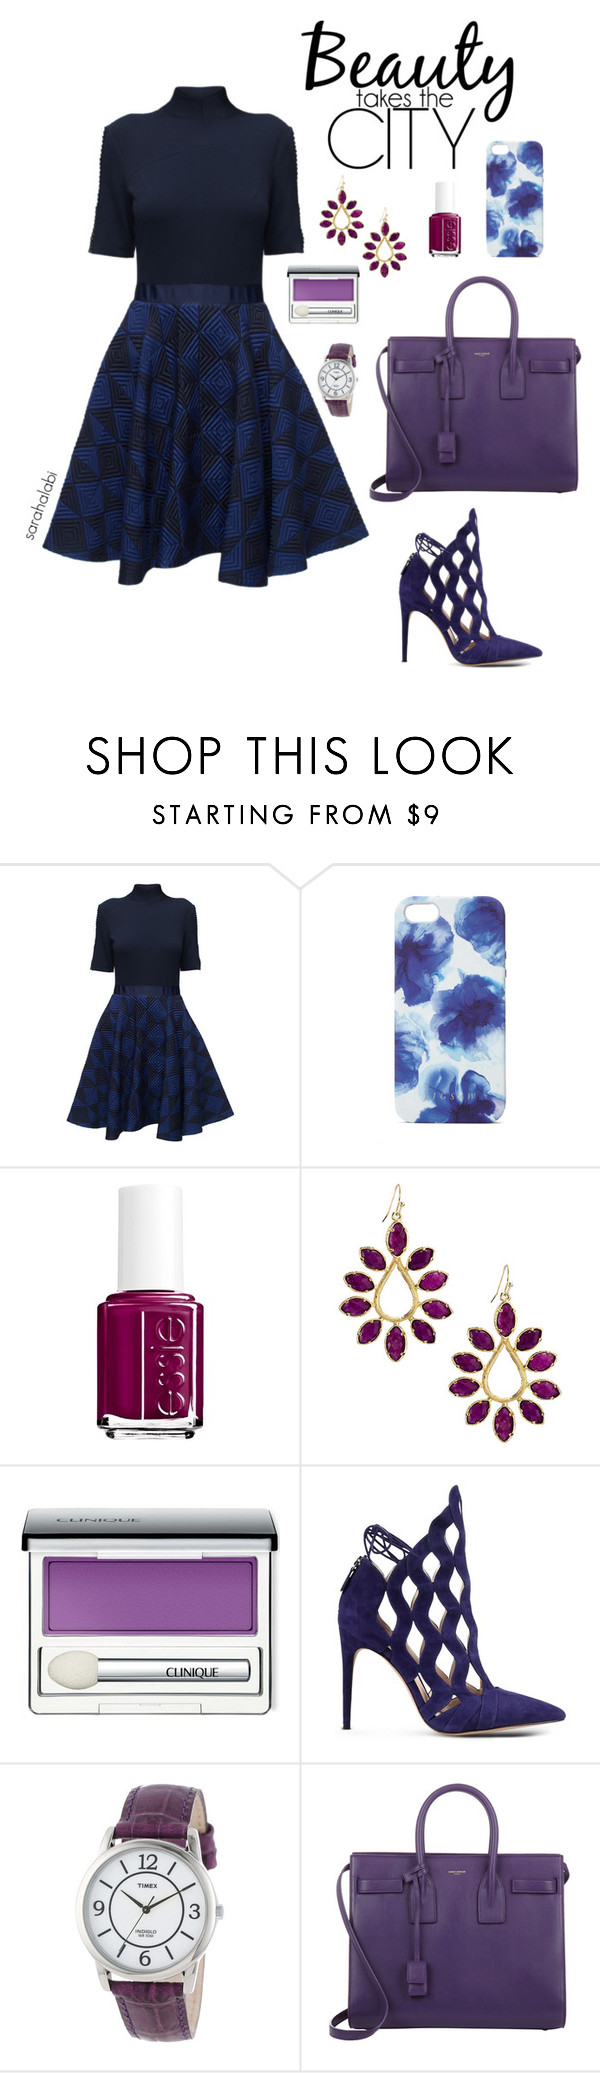 """live or evil ?"" by sarsouur ❤ liked on Polyvore featuring Lattori, Jigsaw, Essie, Kendra Scott, Clinique, Alexandre Birman, Timex and Yves Saint Laurent"